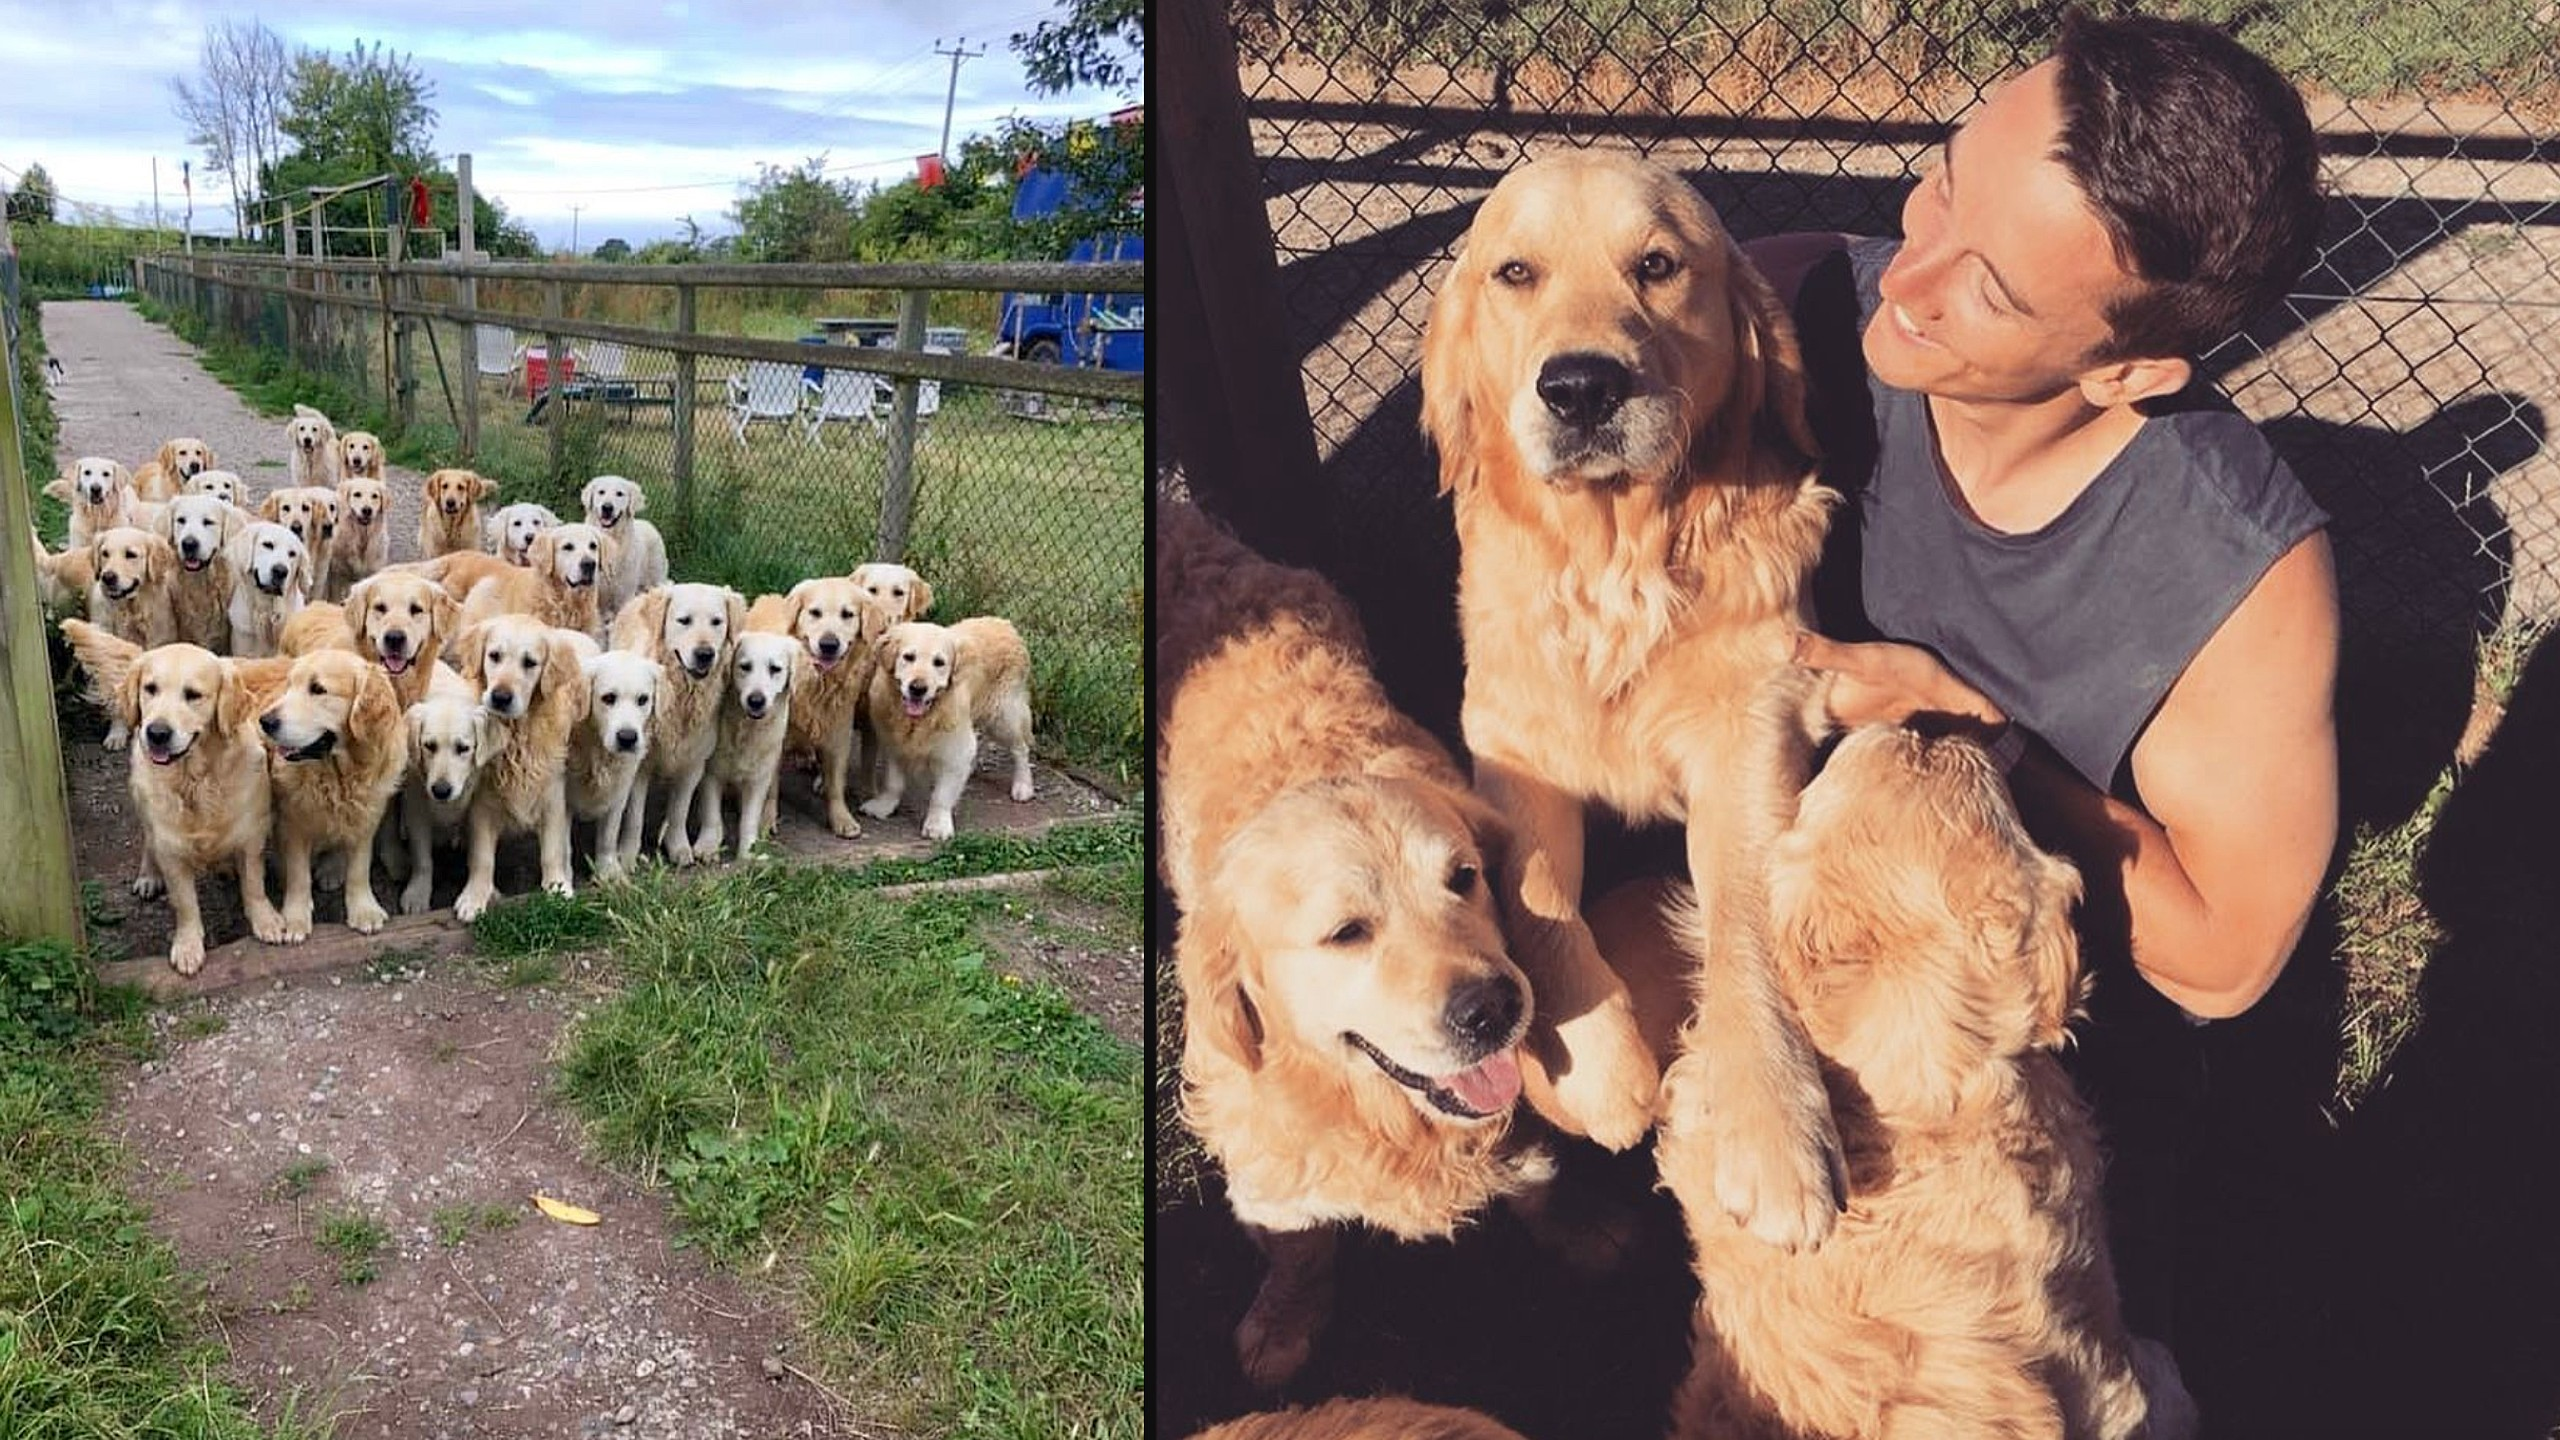 Soak up some puppy love at the Golden Retriever Experience